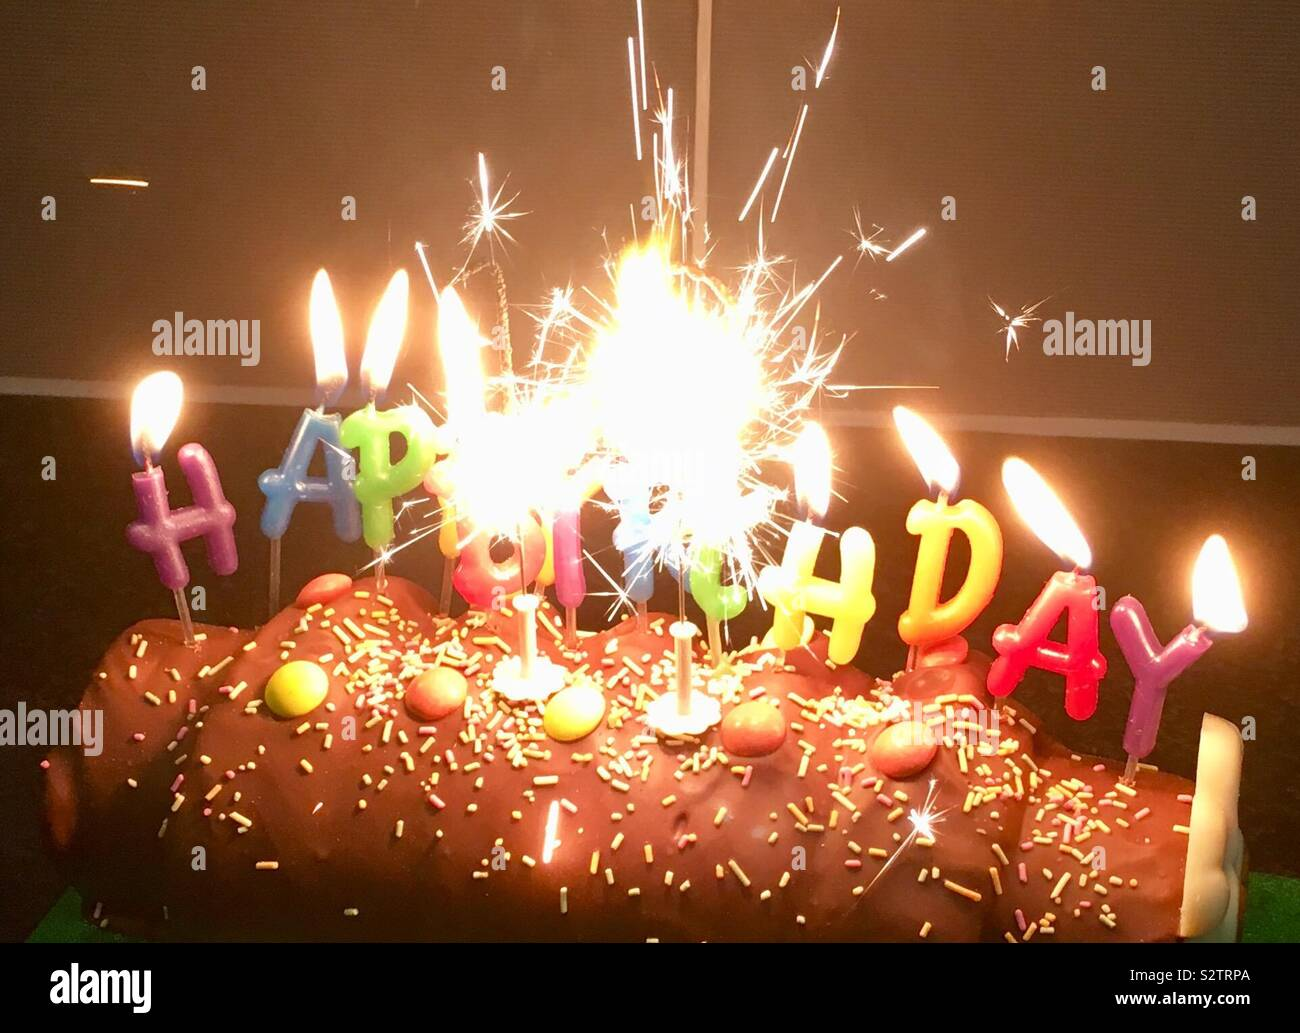 Pleasing Happy Birthday Cake With Candles And Sparklers Stock Photo Funny Birthday Cards Online Alyptdamsfinfo